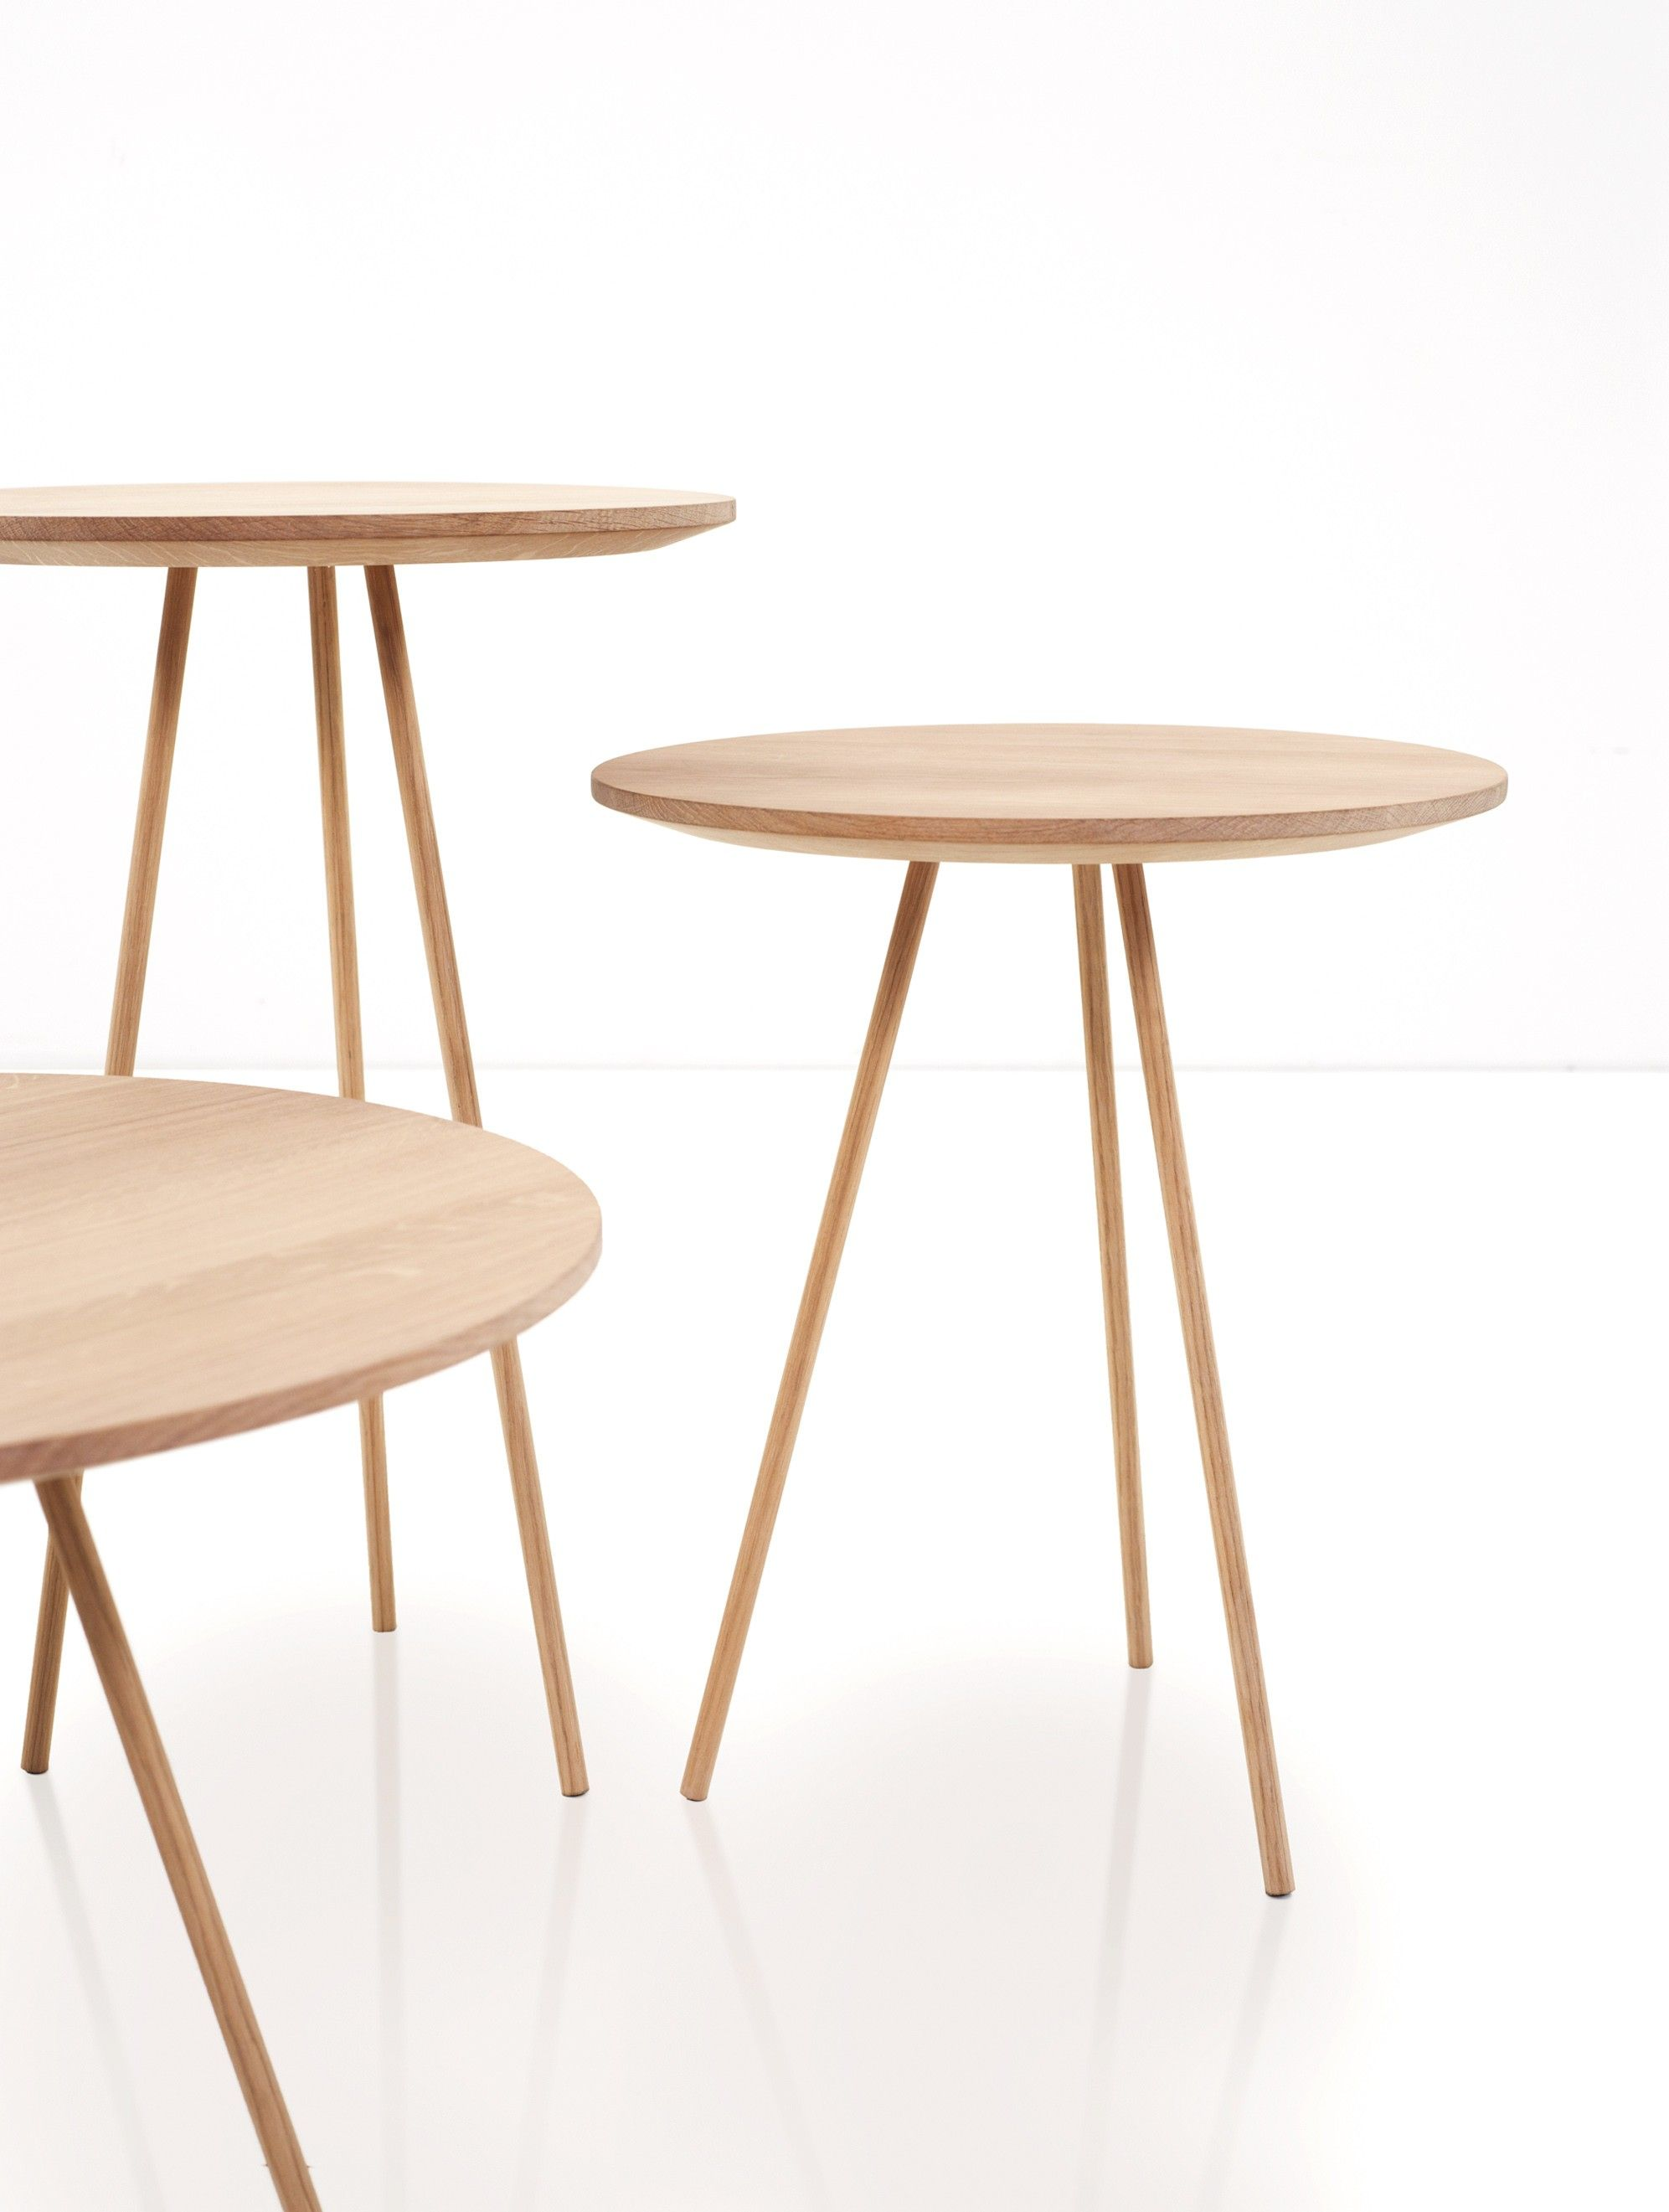 Mobilia design coffee and side tables - The Minimalist Drip Side Table Was Designed By Bernhard M Ller For His Label More As A Single Coffee Table In Your Living Room Or As A Side Table Combined